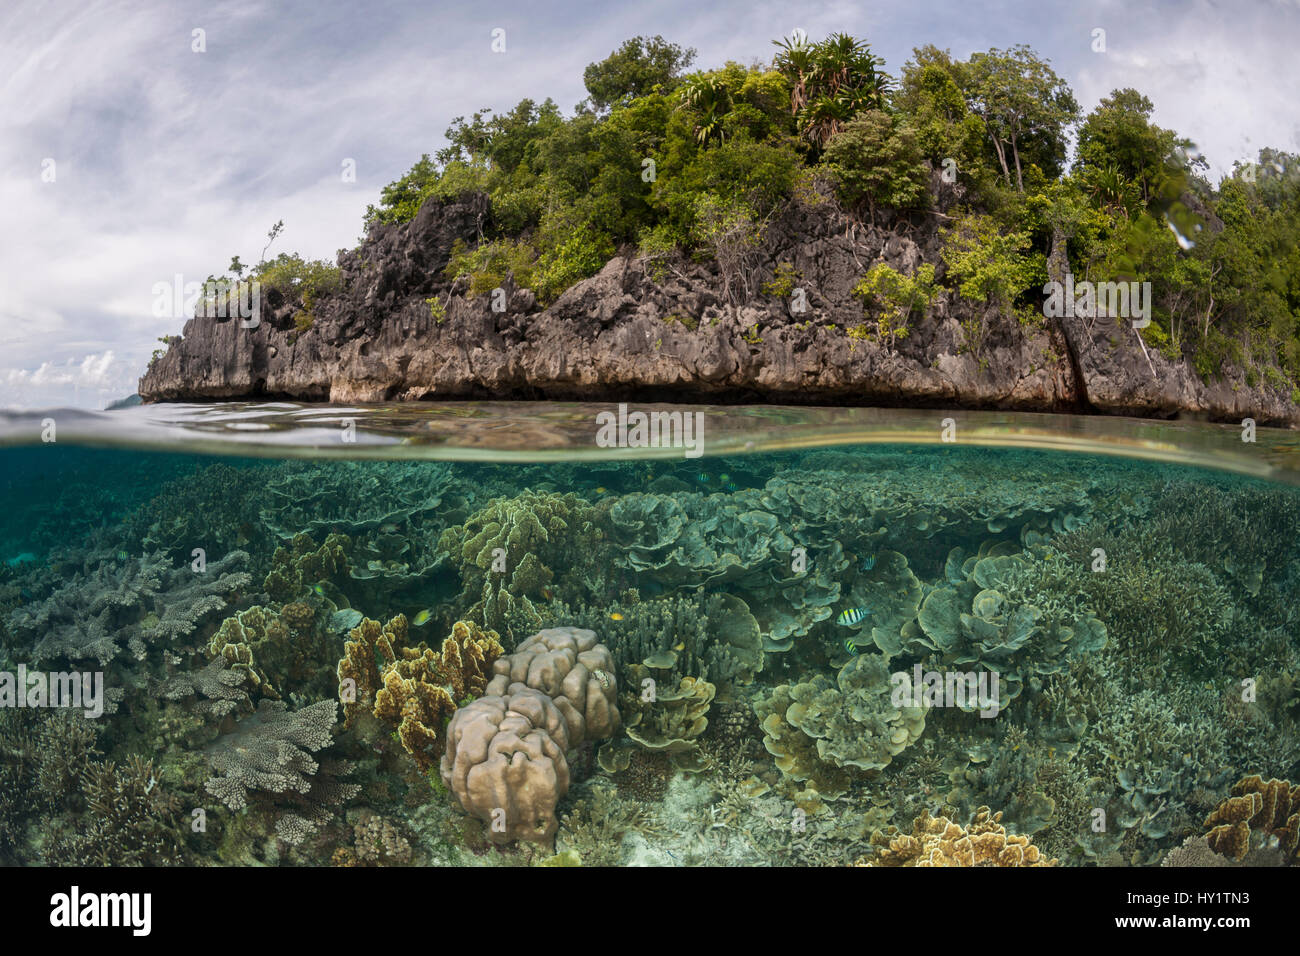 Split level of coral reef and a tropical island. Raja Ampat, West Papua, Indonesia, February 2012. - Stock Image